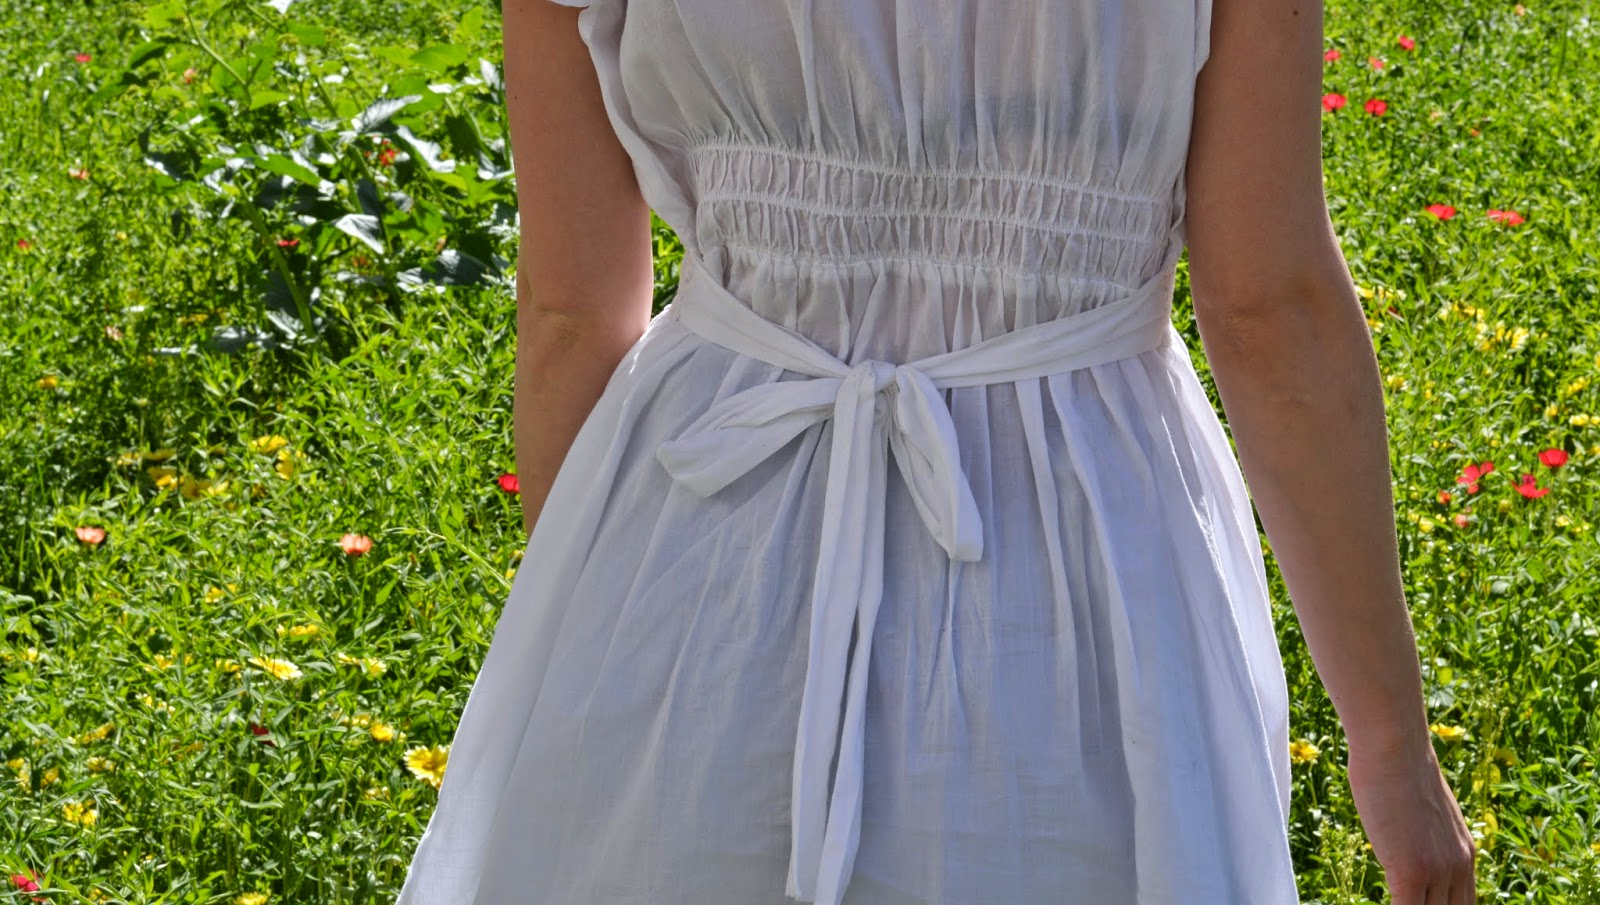 Elastic back of white dress